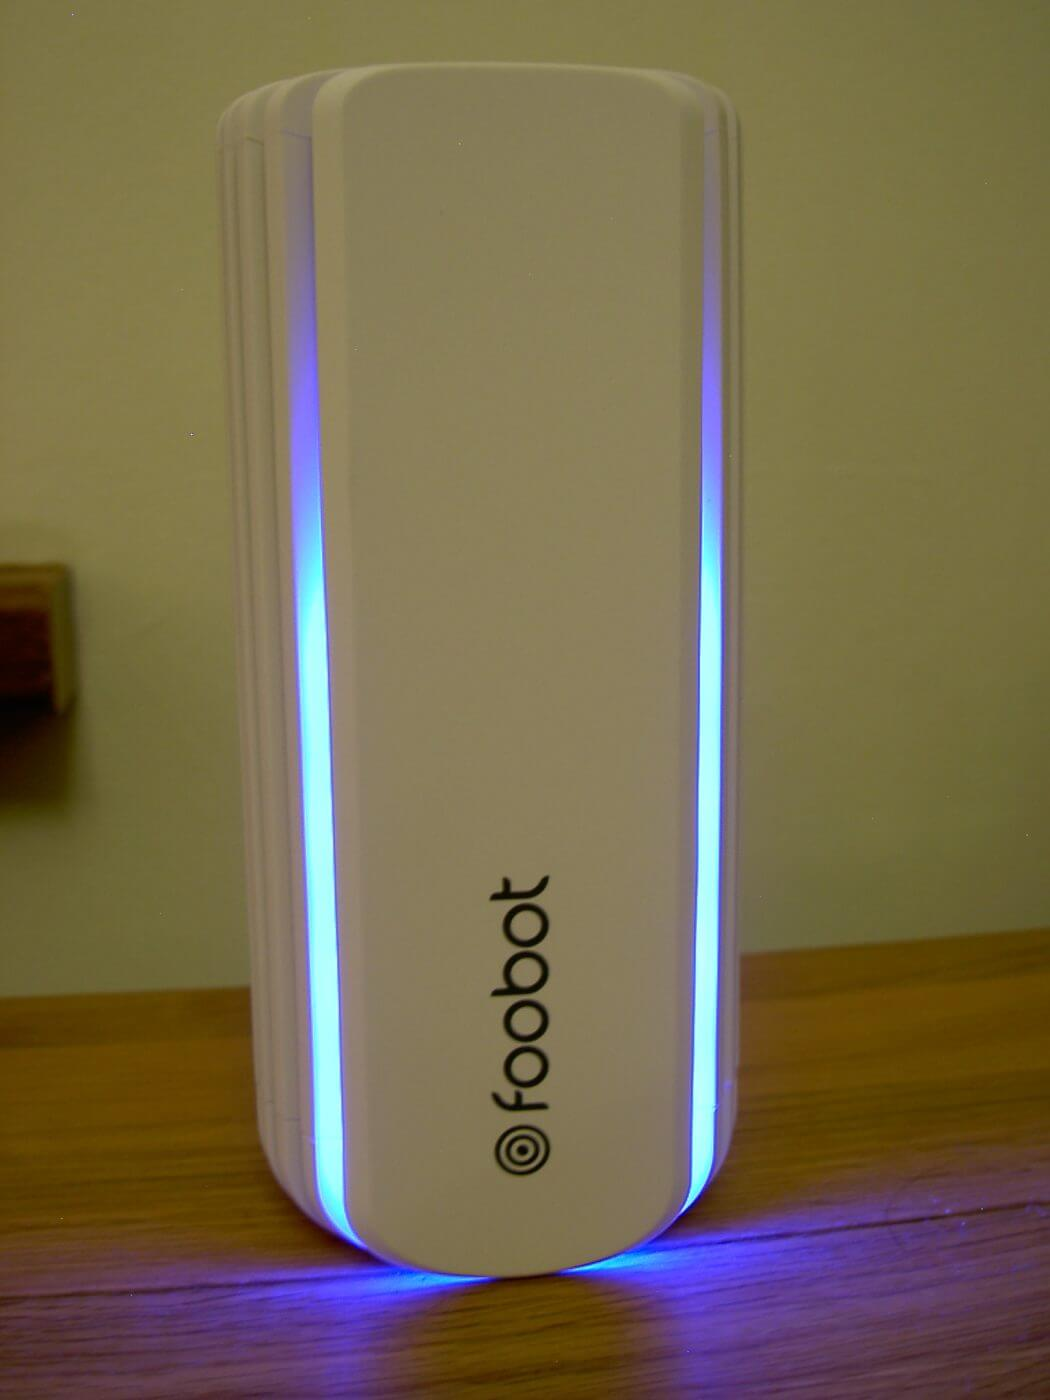 How Good Is Your Air Foobot Knows Geek News Central